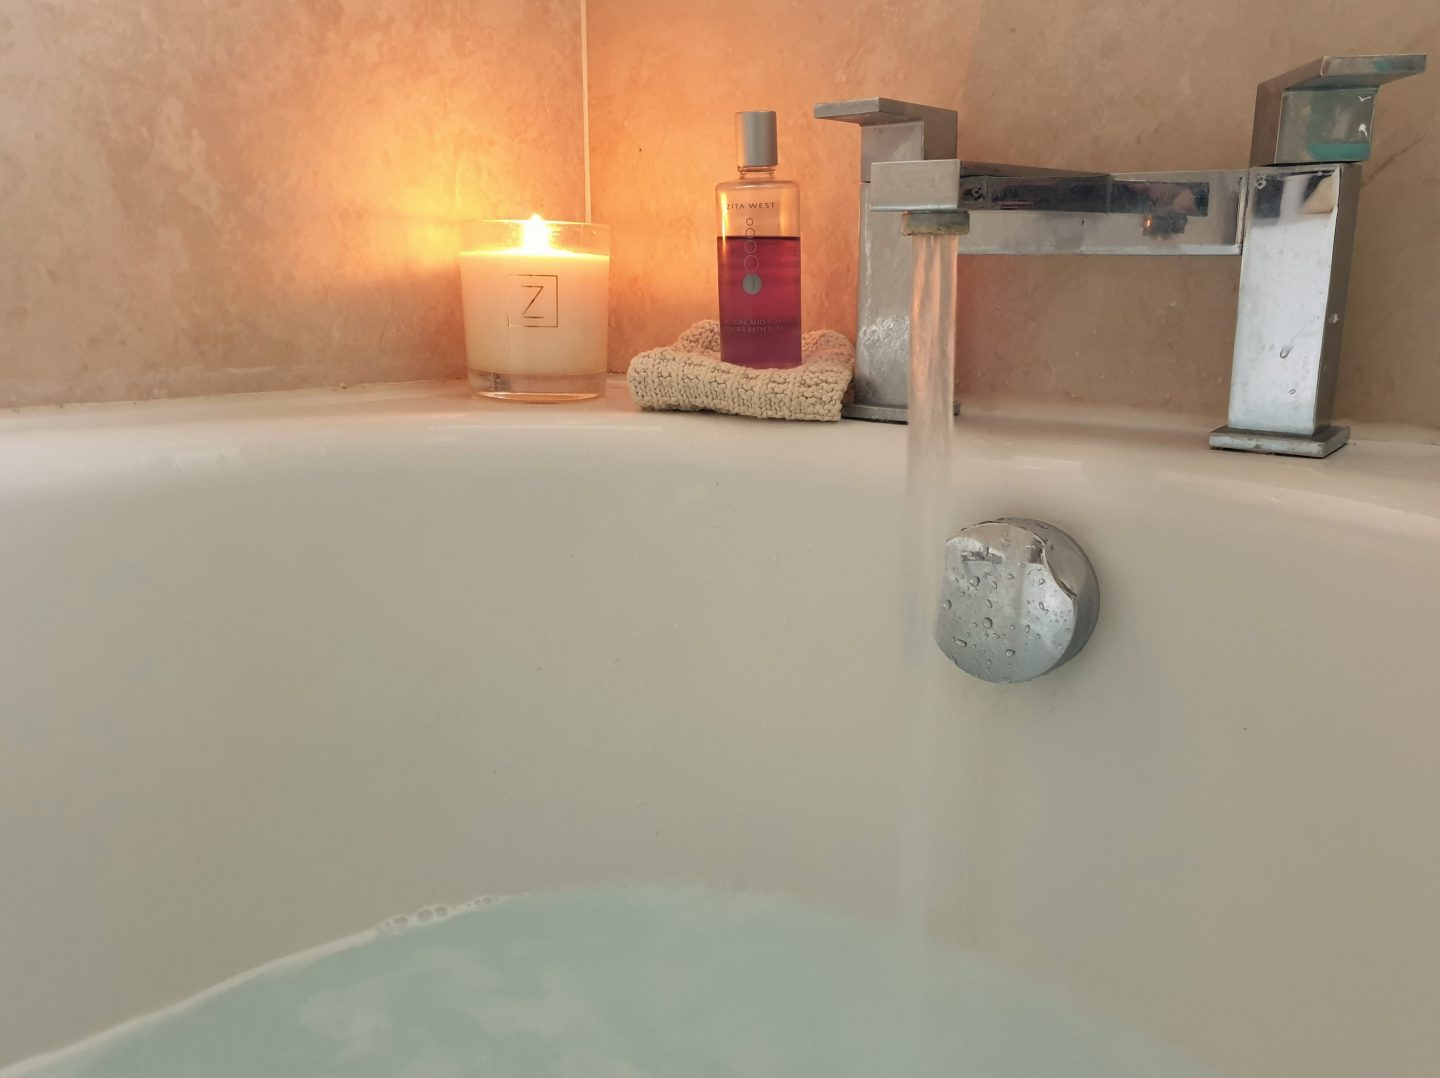 Zita West candle and lavender bath oil